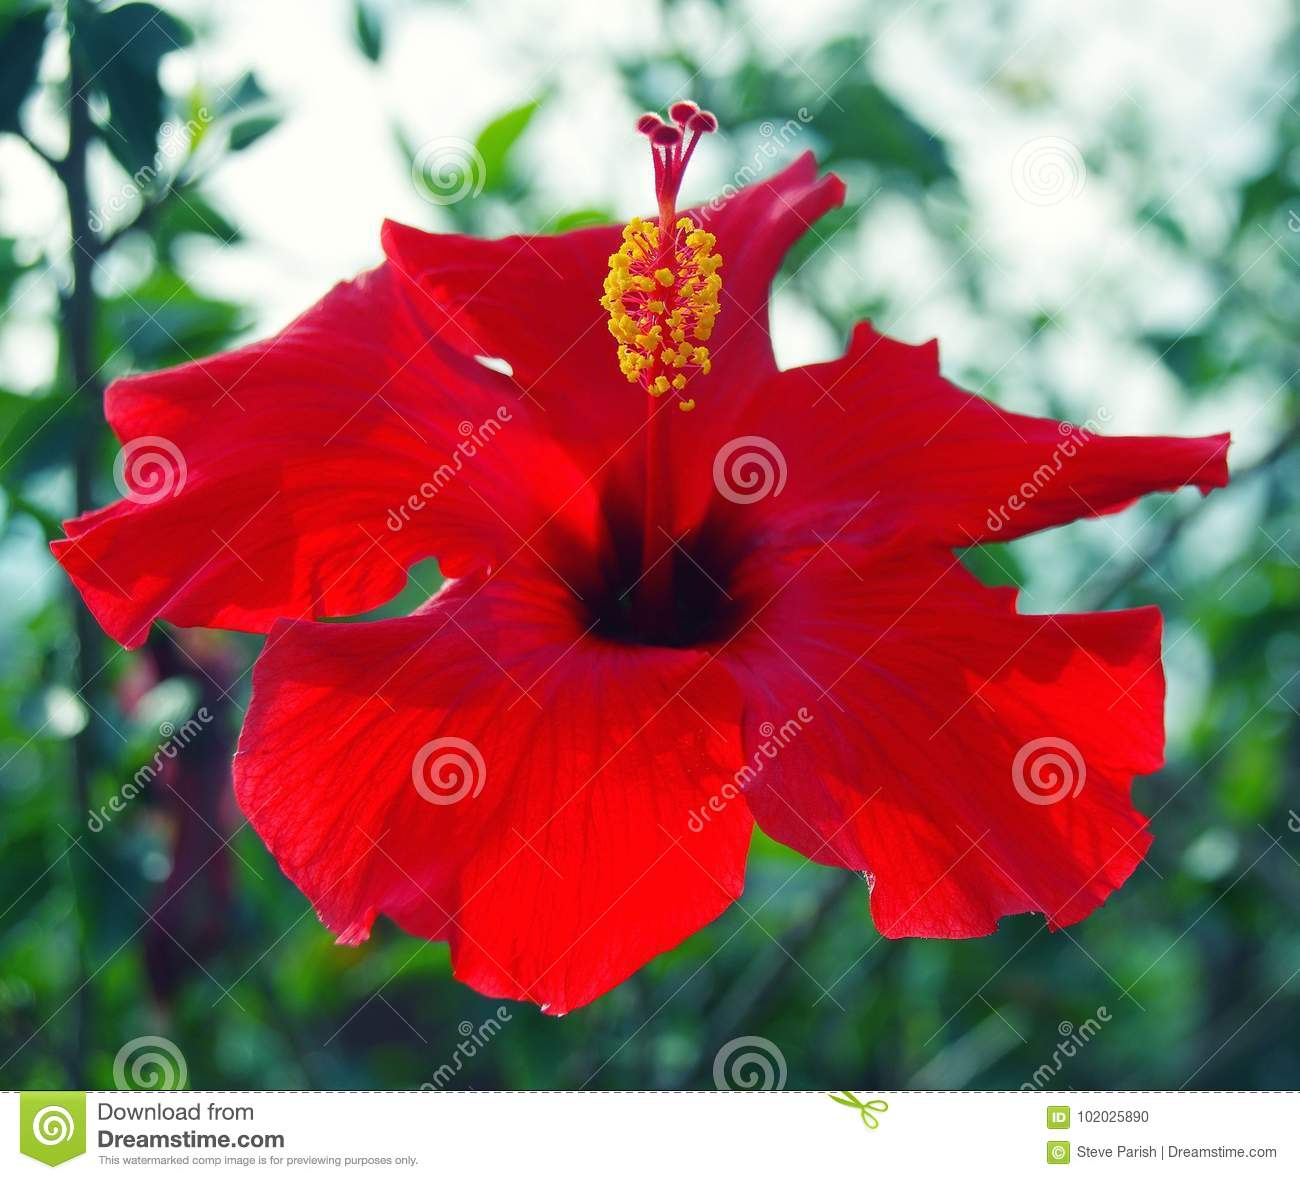 Close Up Of Red Hibiscus Flower Blossom With Yellow Stamen And Deep